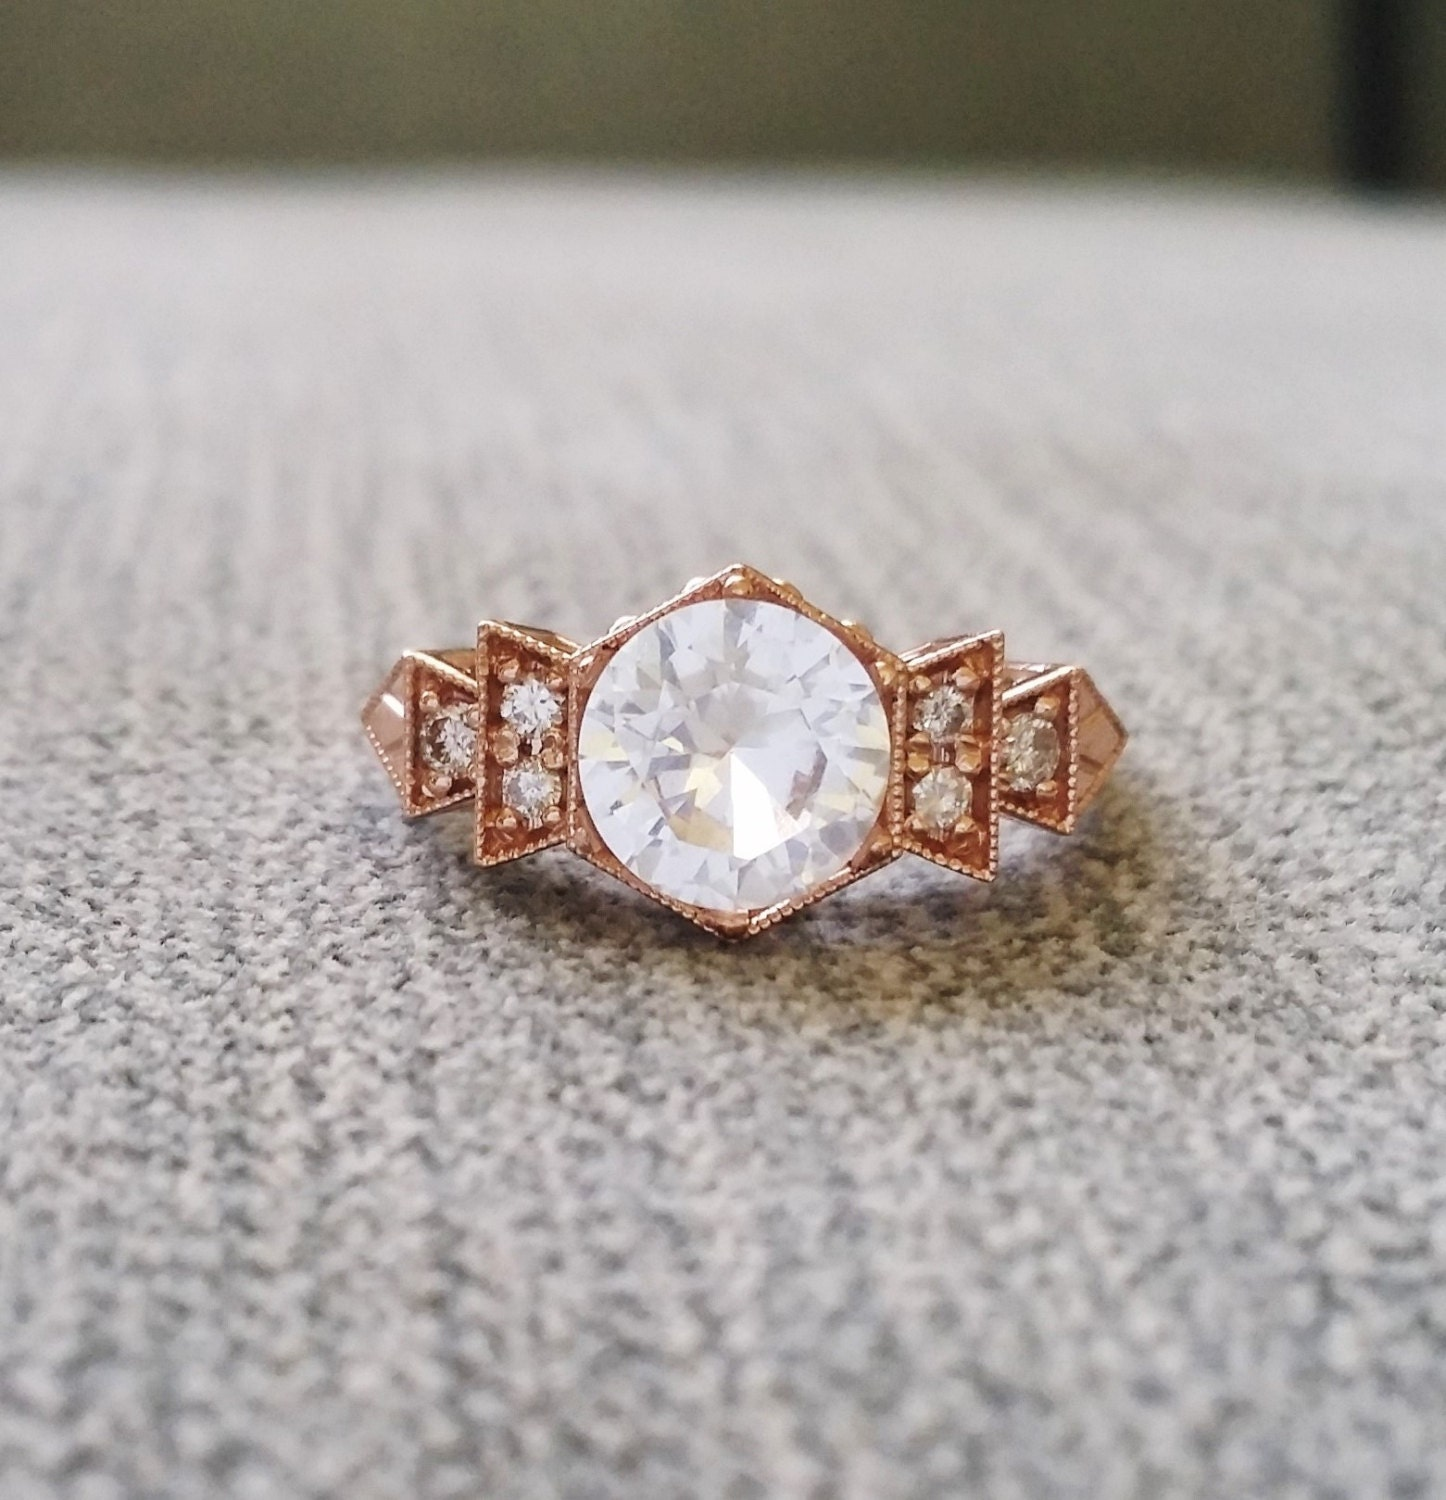 antique diamond white sapphire engagement ring rose gold 1920s